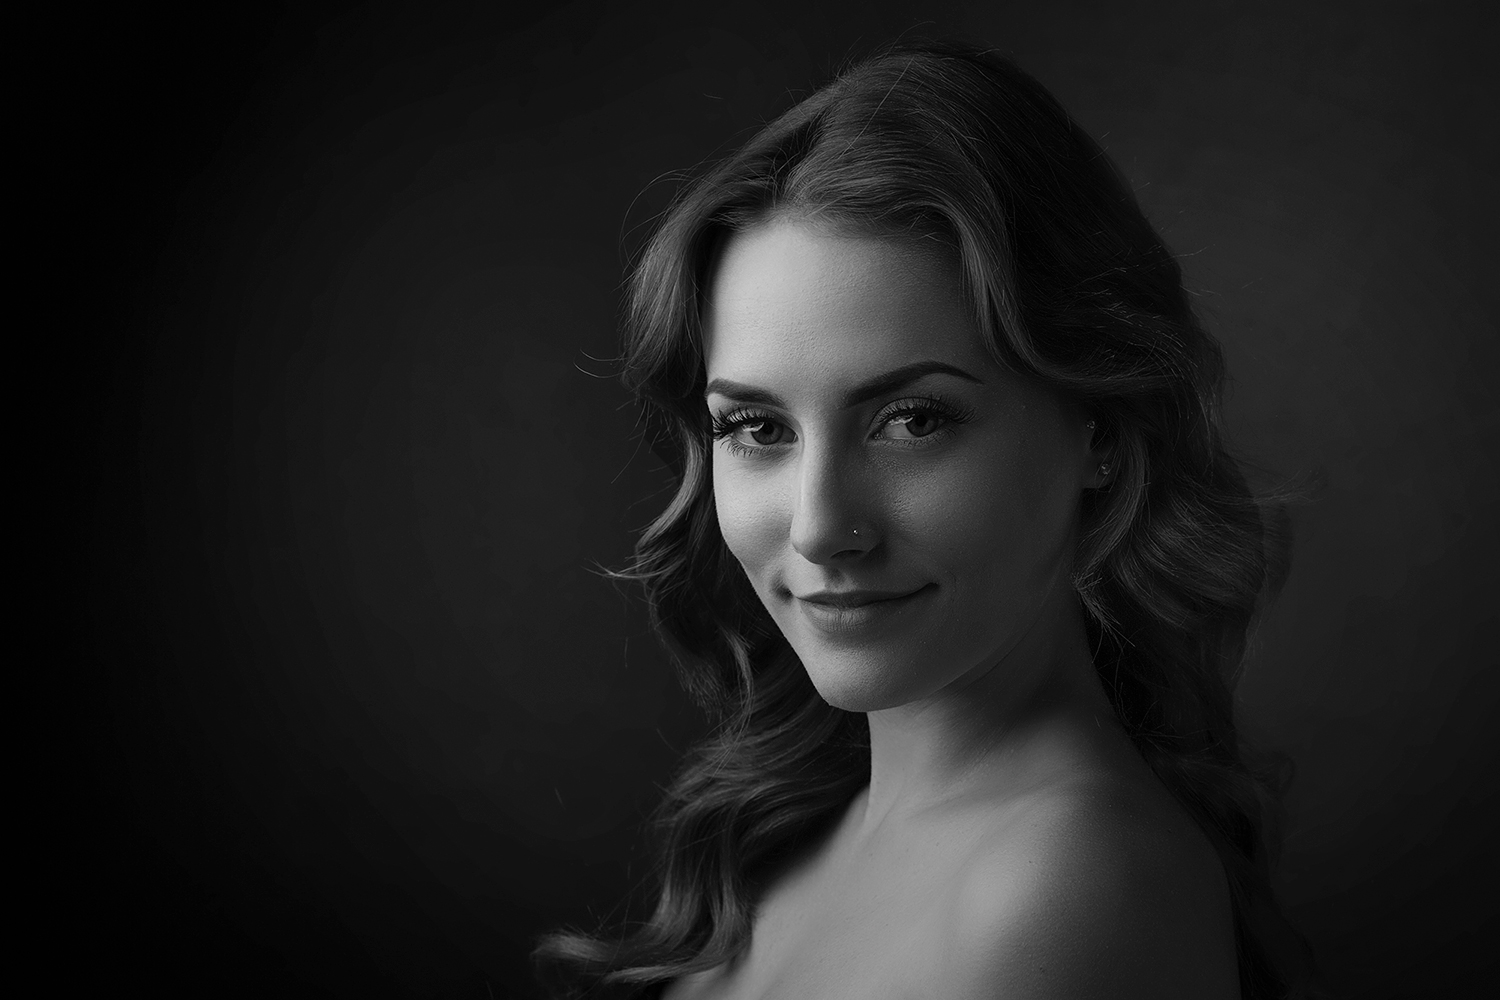 tips-to-improve-your-portrait-photography-immediately